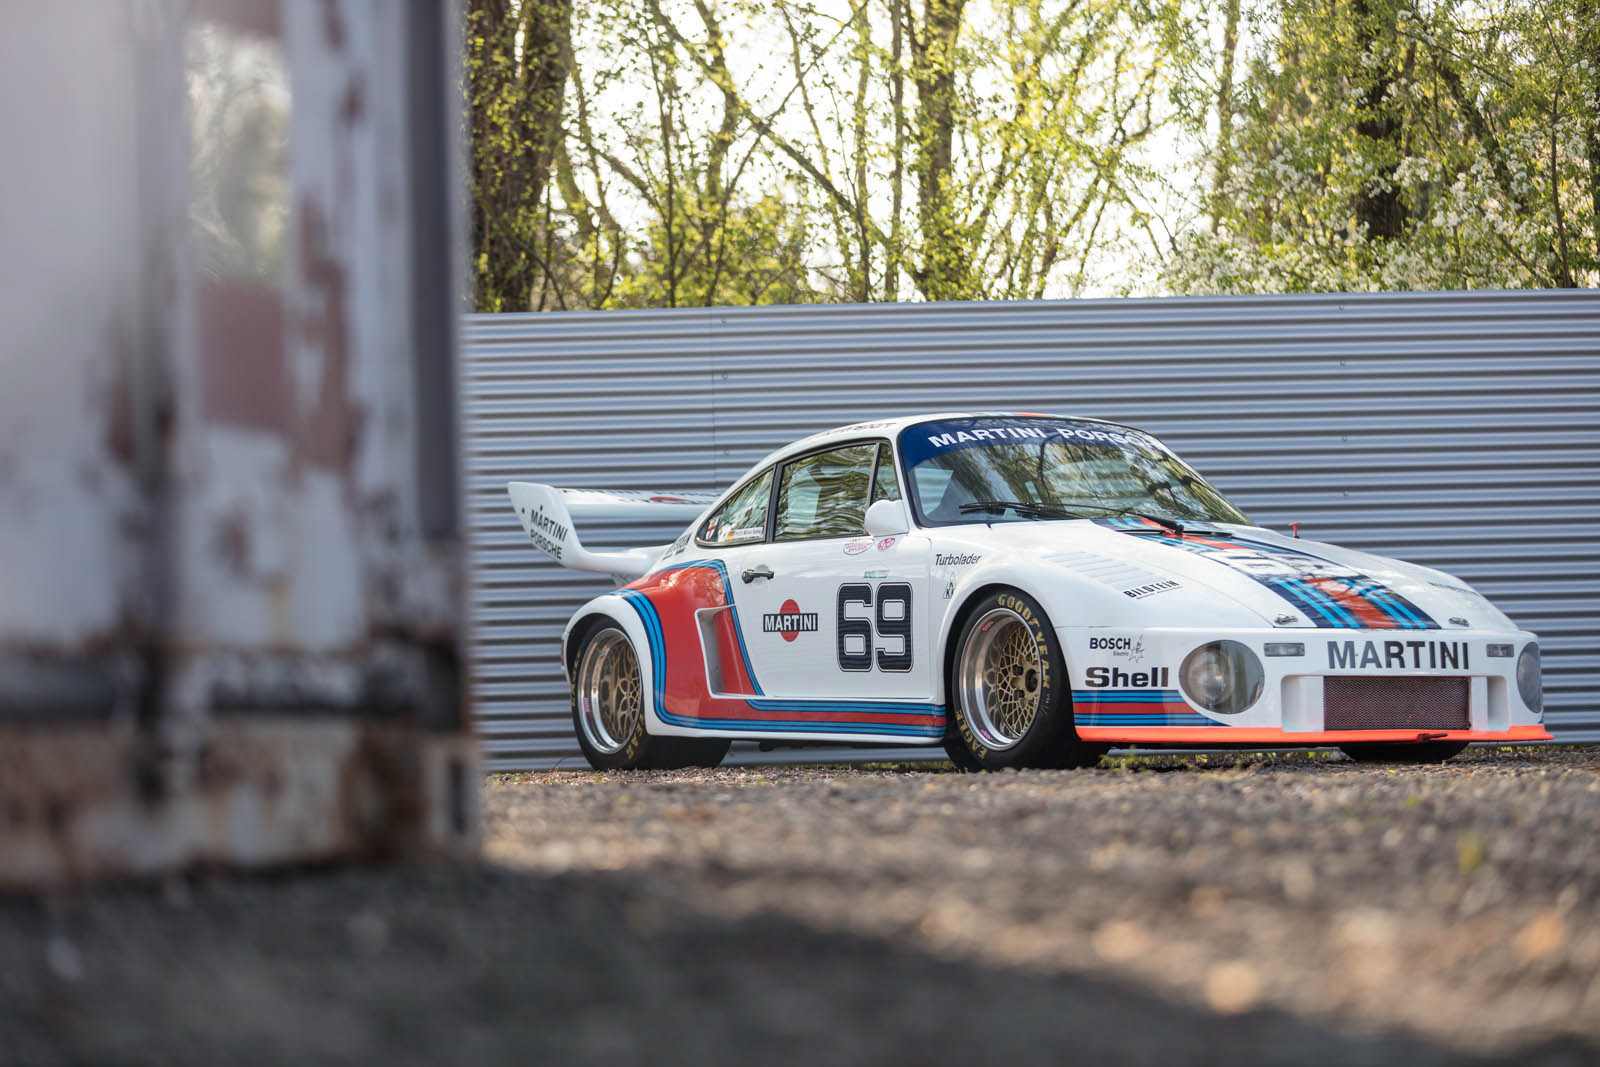 Martini-Kremer-Racing-Porsche-935-at-Bonhams-Spa-Sale-6.jpg